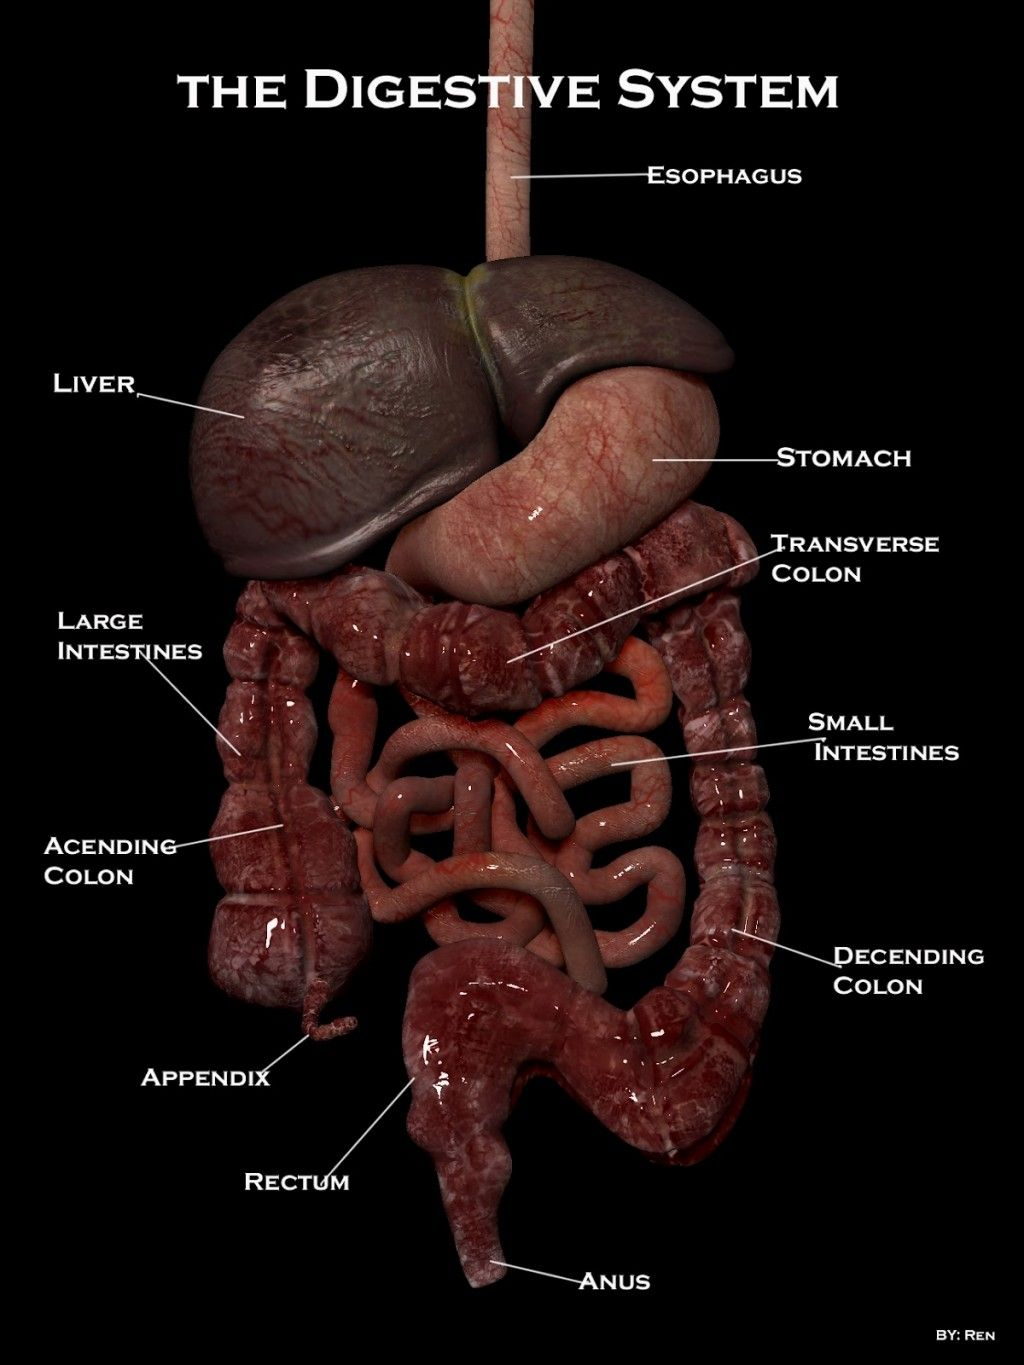 Real Pictures Of The Digestive System Ew Now I Can See Exactly